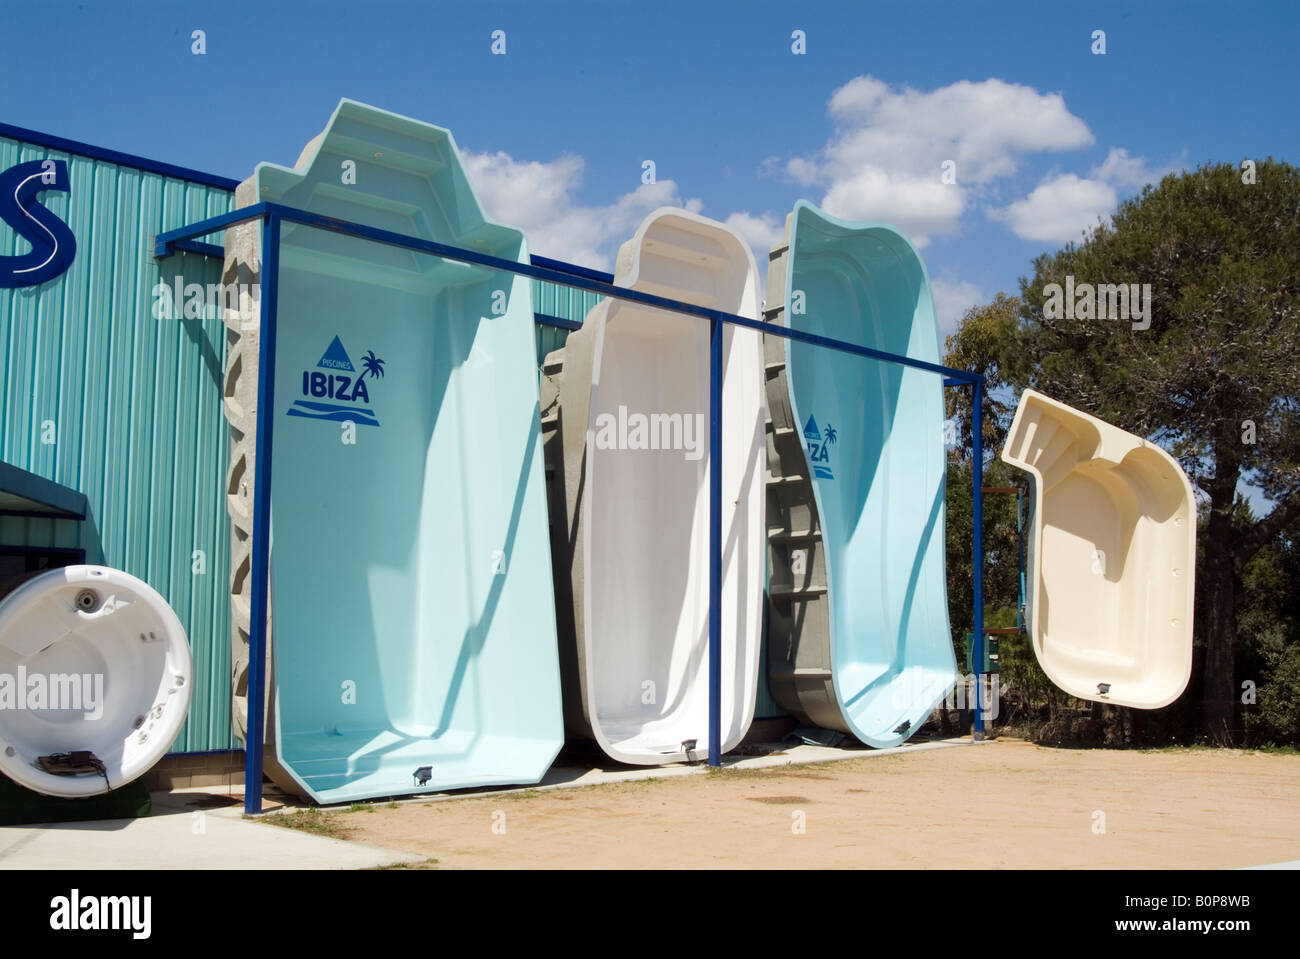 Swimming Pool Pools Home House Fibreglass Moulded Swiming At For Sale Stock Photo Royalty Free